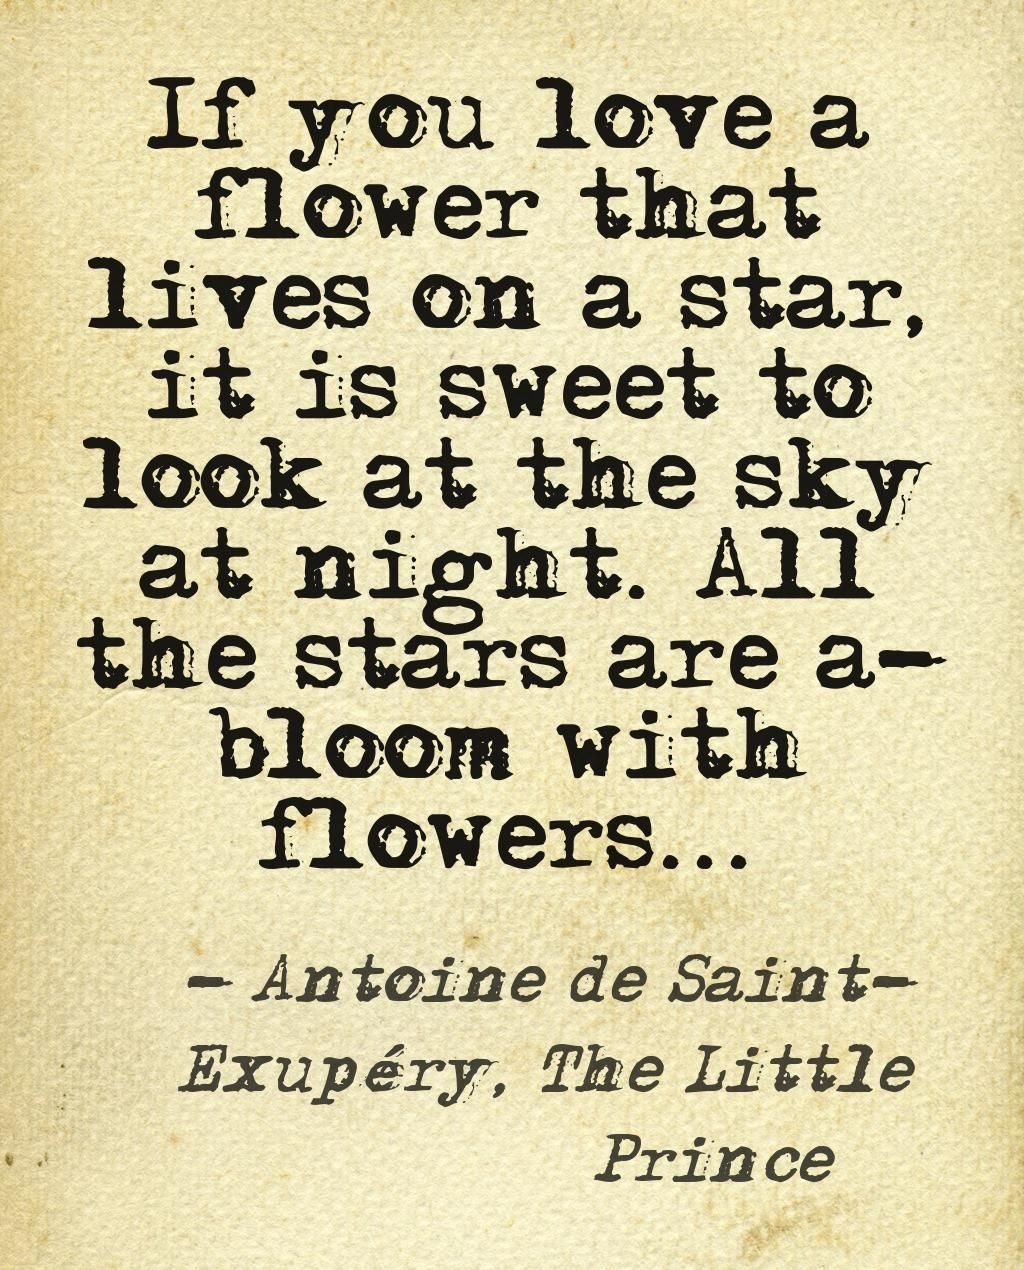 little prince by antoine de saint exupery essay The little prince by antoine de saint-exupery a french airman during the golden age of aviation, antoine de saint-exupery flew mail routes in northern africa throughout the 1920s and.